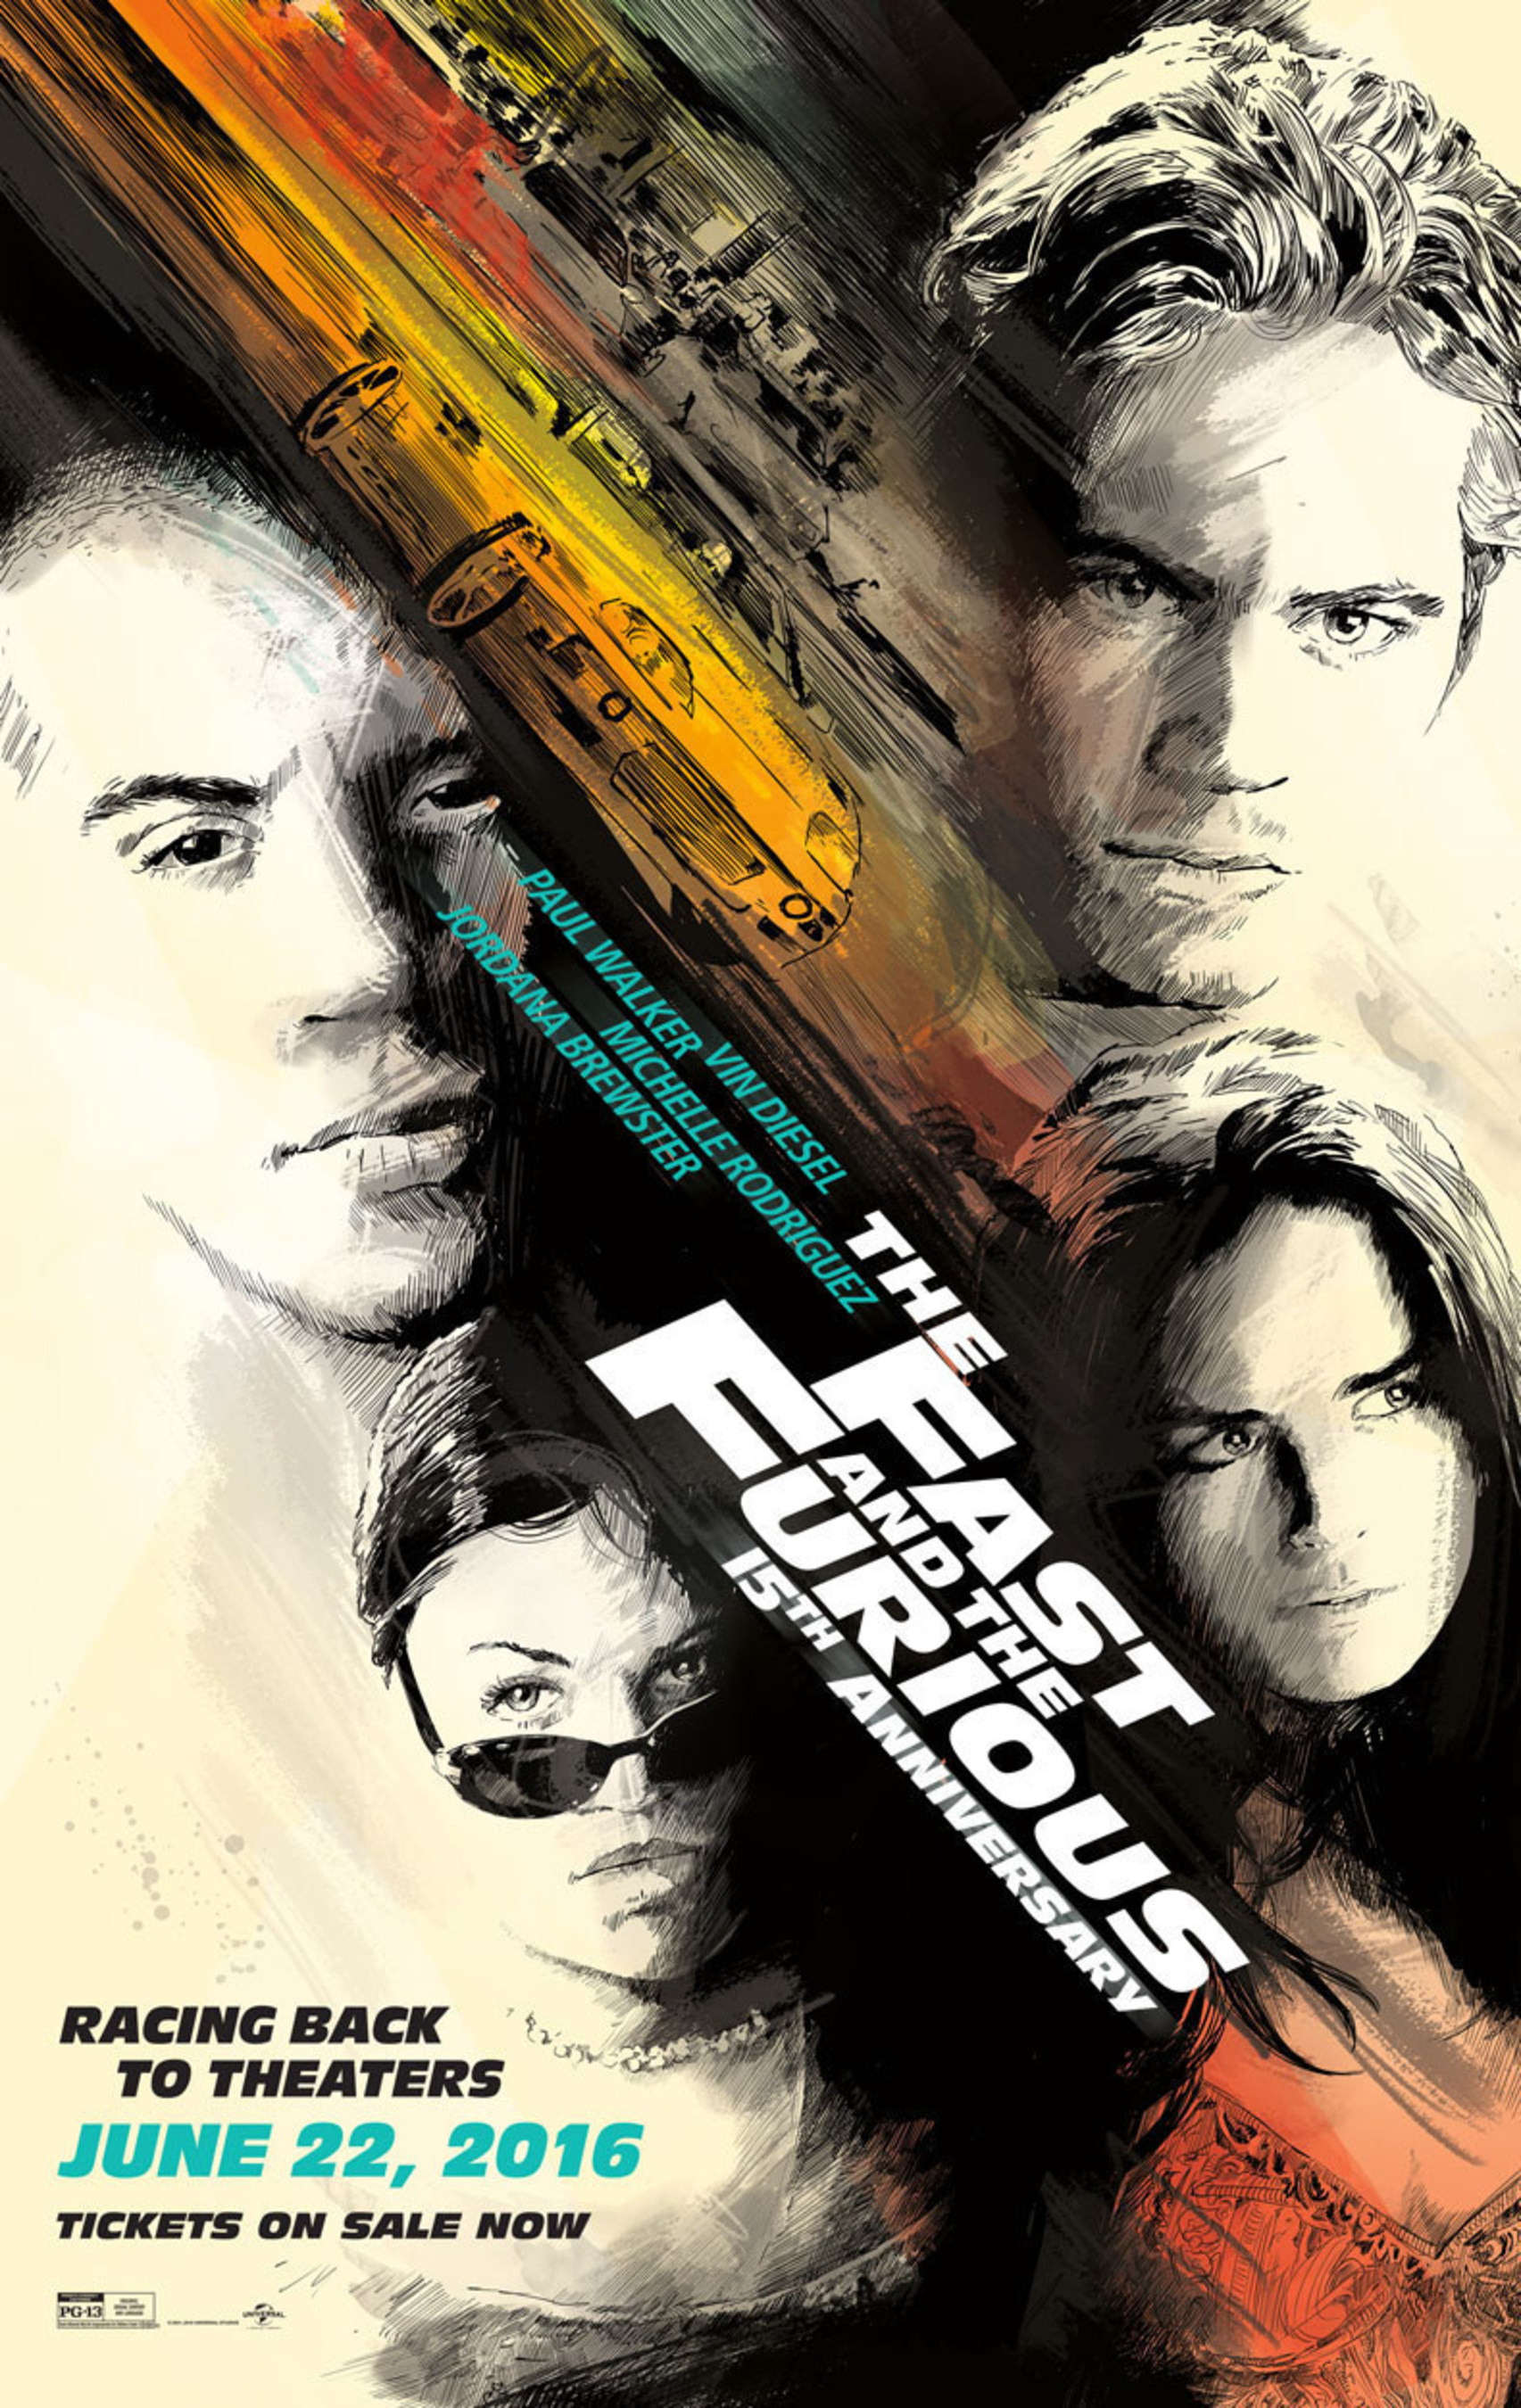 UNIVERSAL PICTURES' THE FAST AND THE FURIOUS CELEBRATES 15TH ANNIVERSARY BY RACING BACK TO THEATERS ON WEDNESDAY, JUNE 22